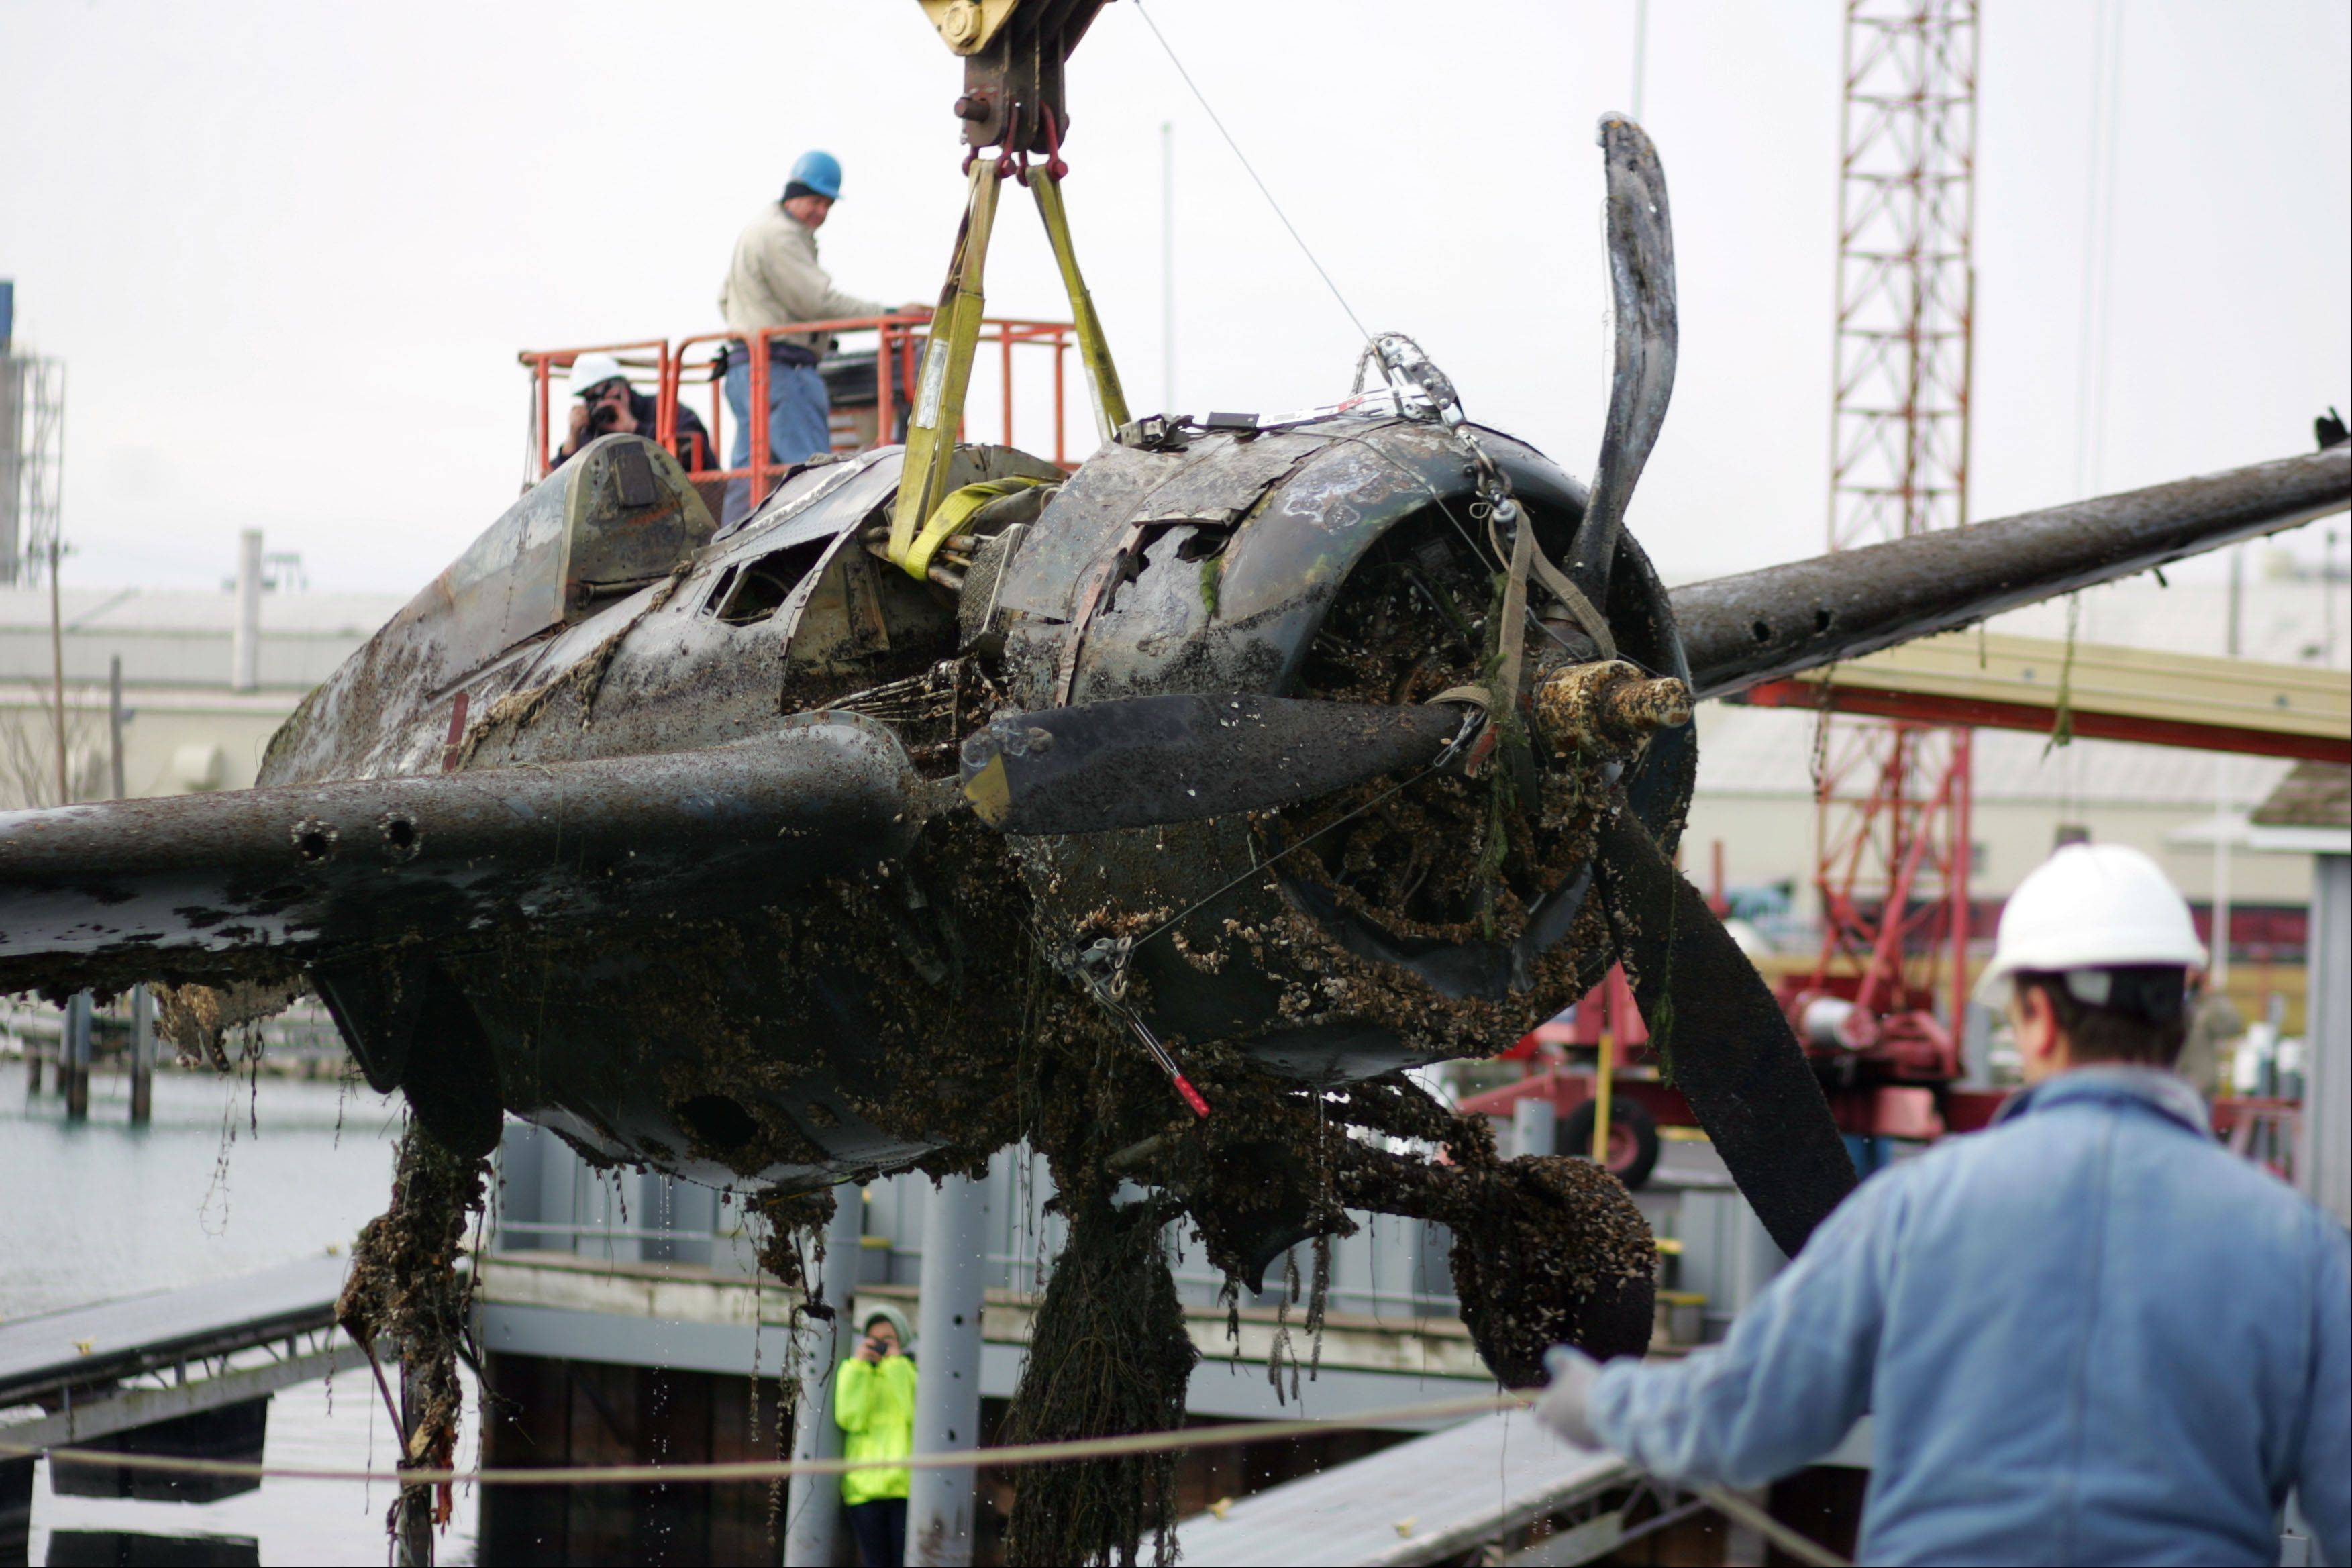 WWII-era plane pulled from Lake Michigan